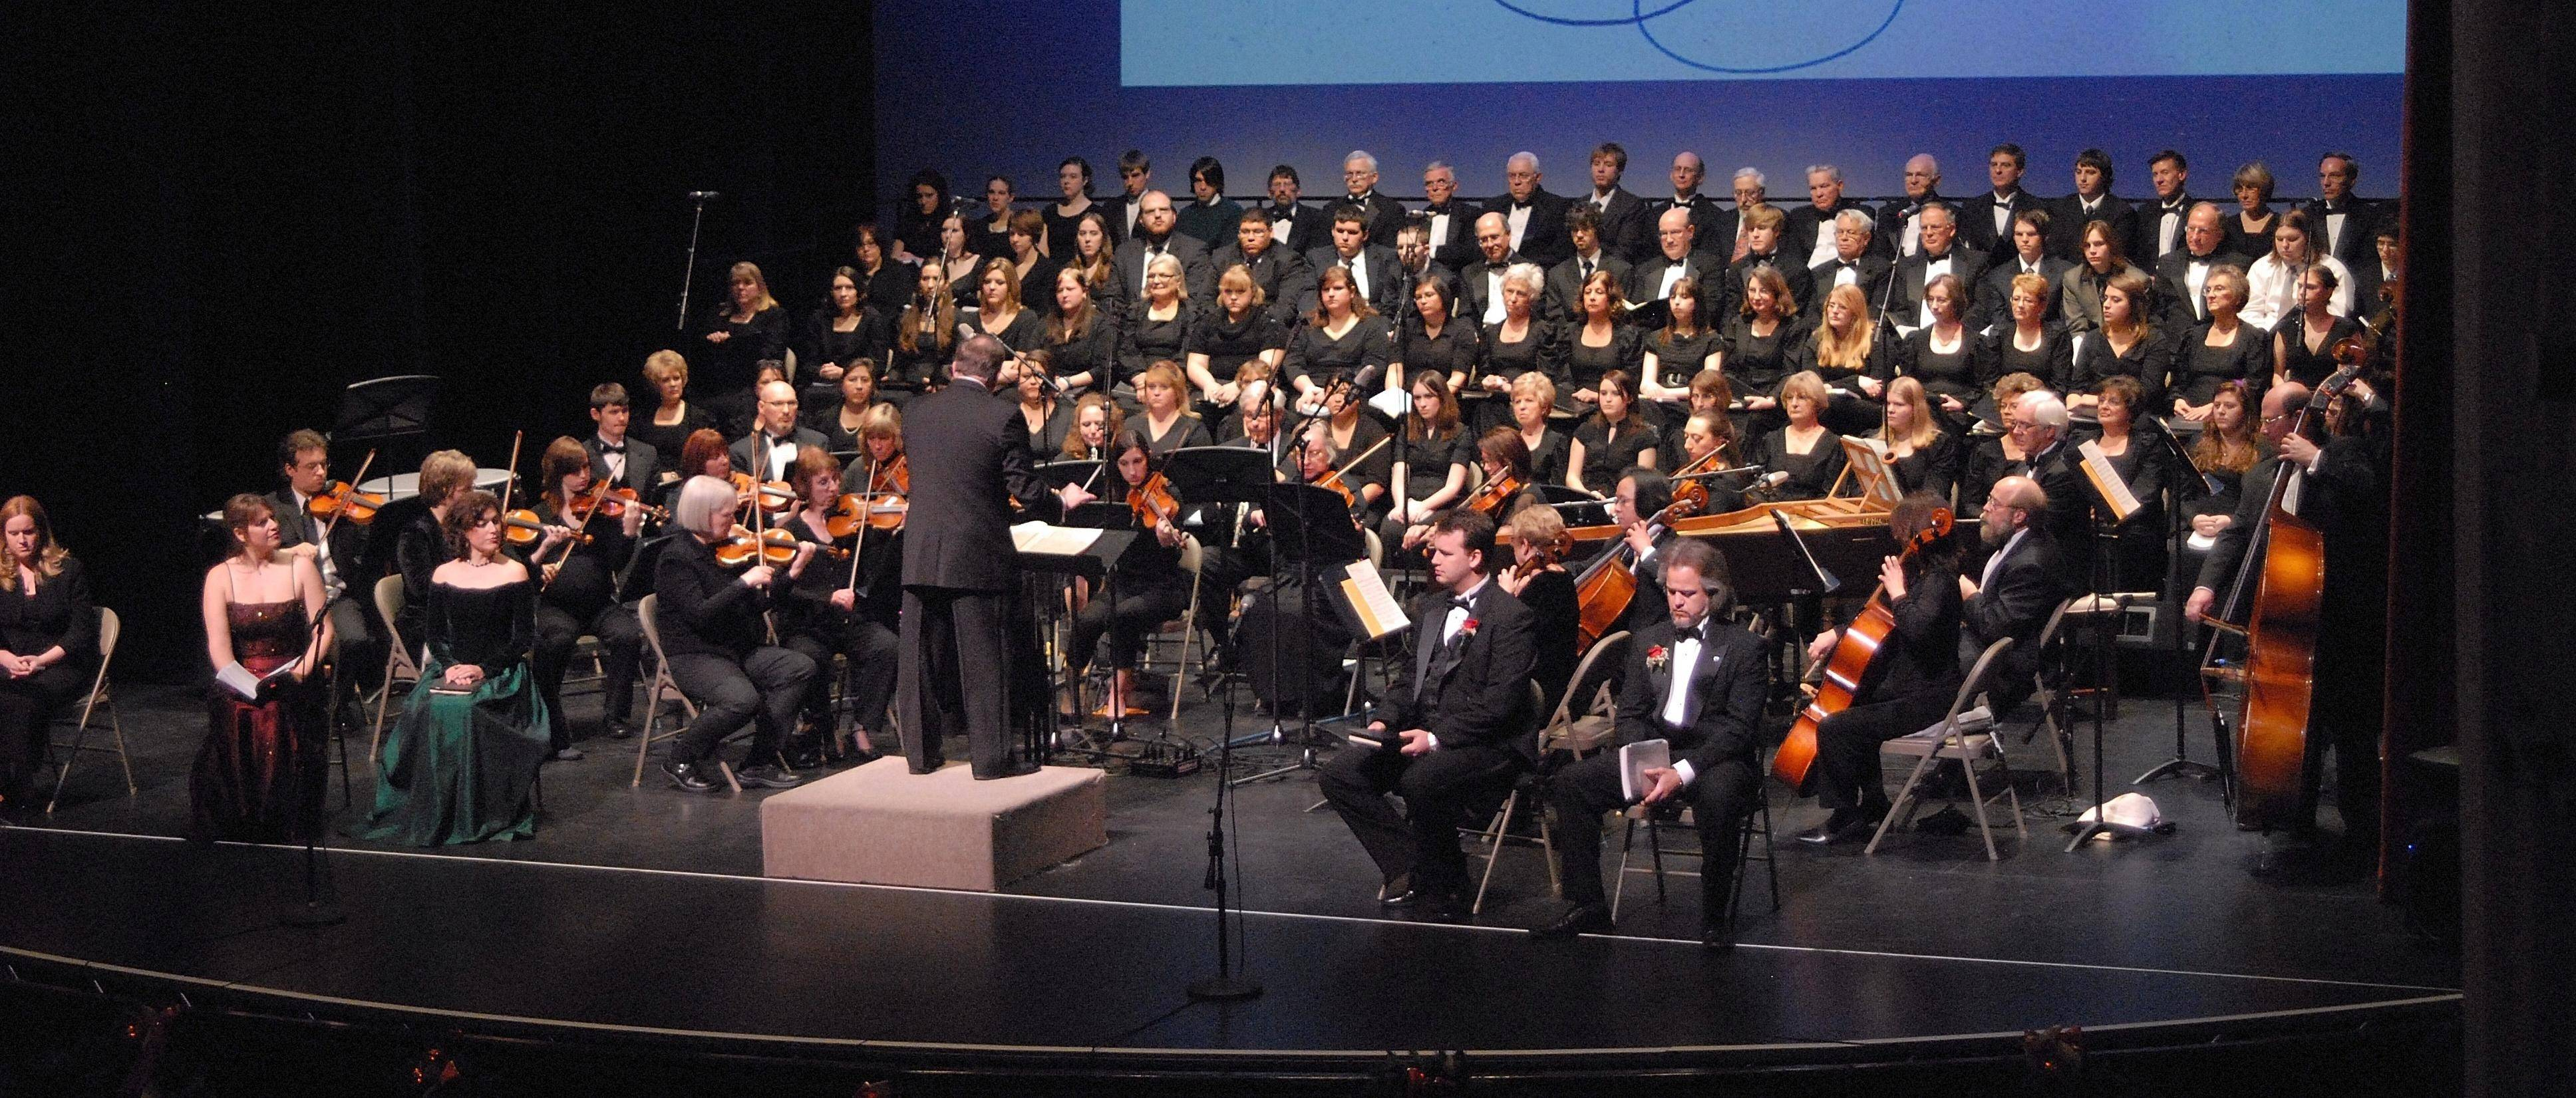 "Voices in Harmony will perform a singalong version of Handel's ""Messiah"" on Sunday, Dec. 11 at the Raue Center for the Arts in Crystal Lake."